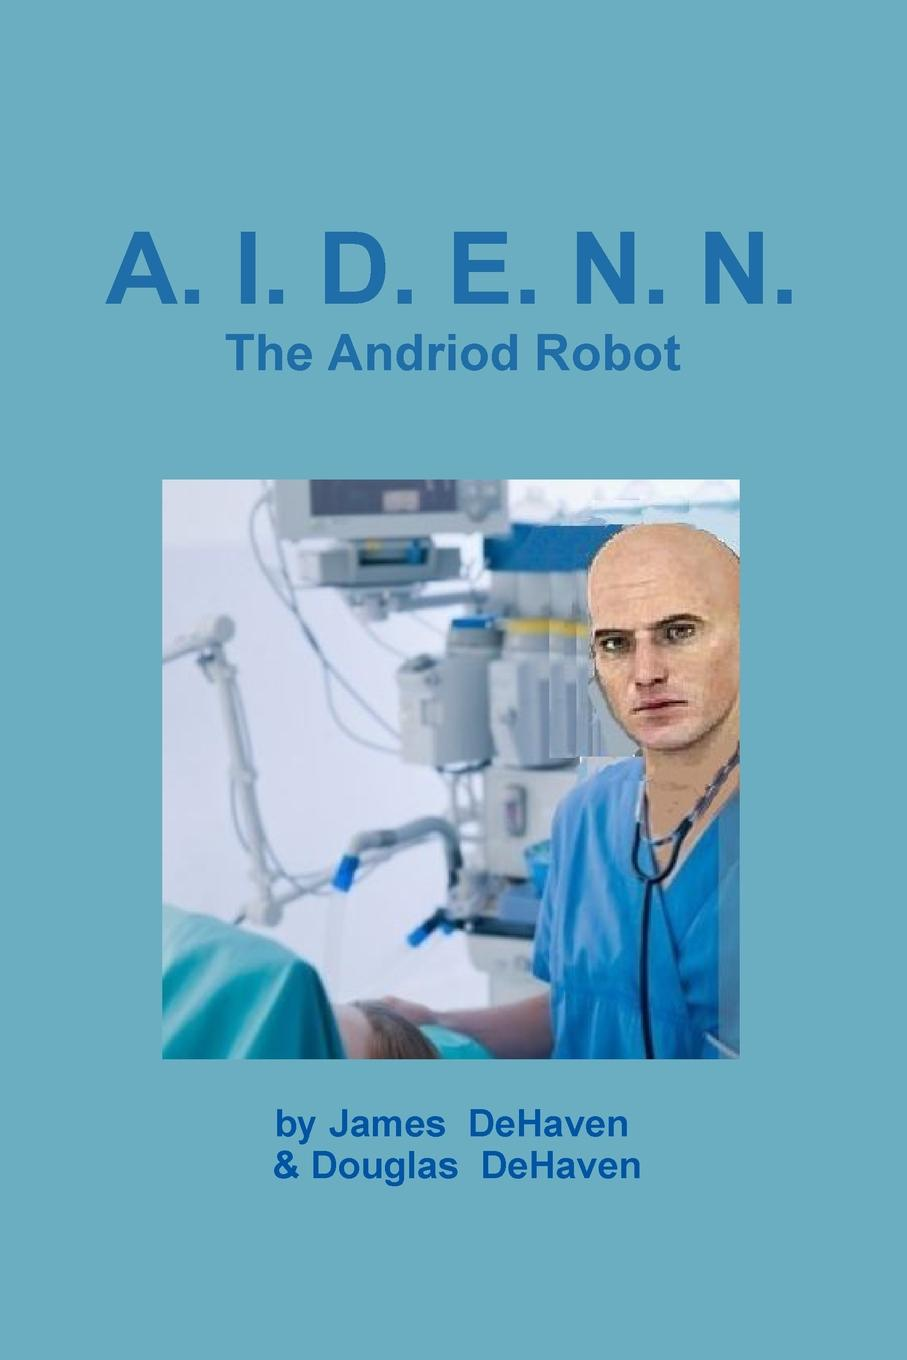 Douglas DeHaven, James DeHaven A.I.D.E.N.N. The Android Robot dr dain heer gary m douglas talk to the animals